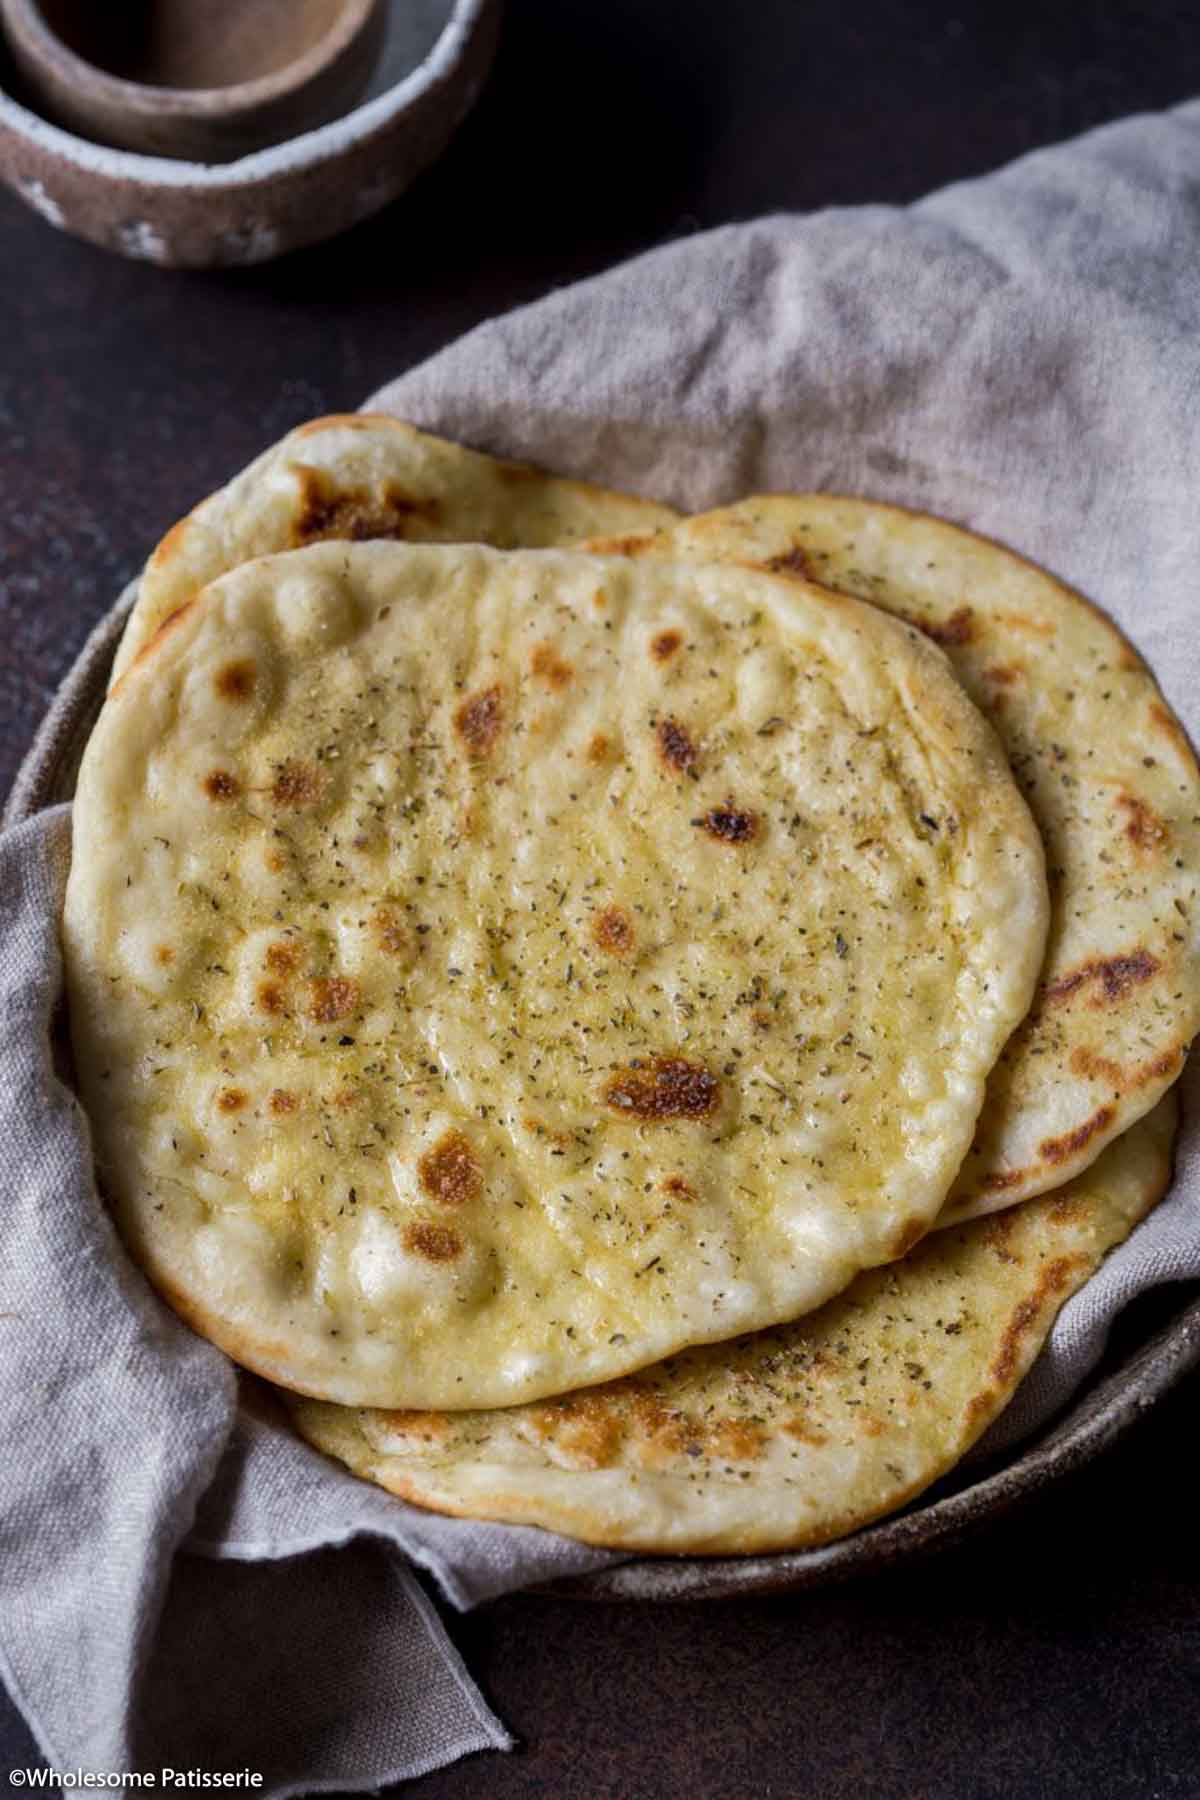 Homemade Pan Fried Flat Bread with Garlic and Dried Herbs